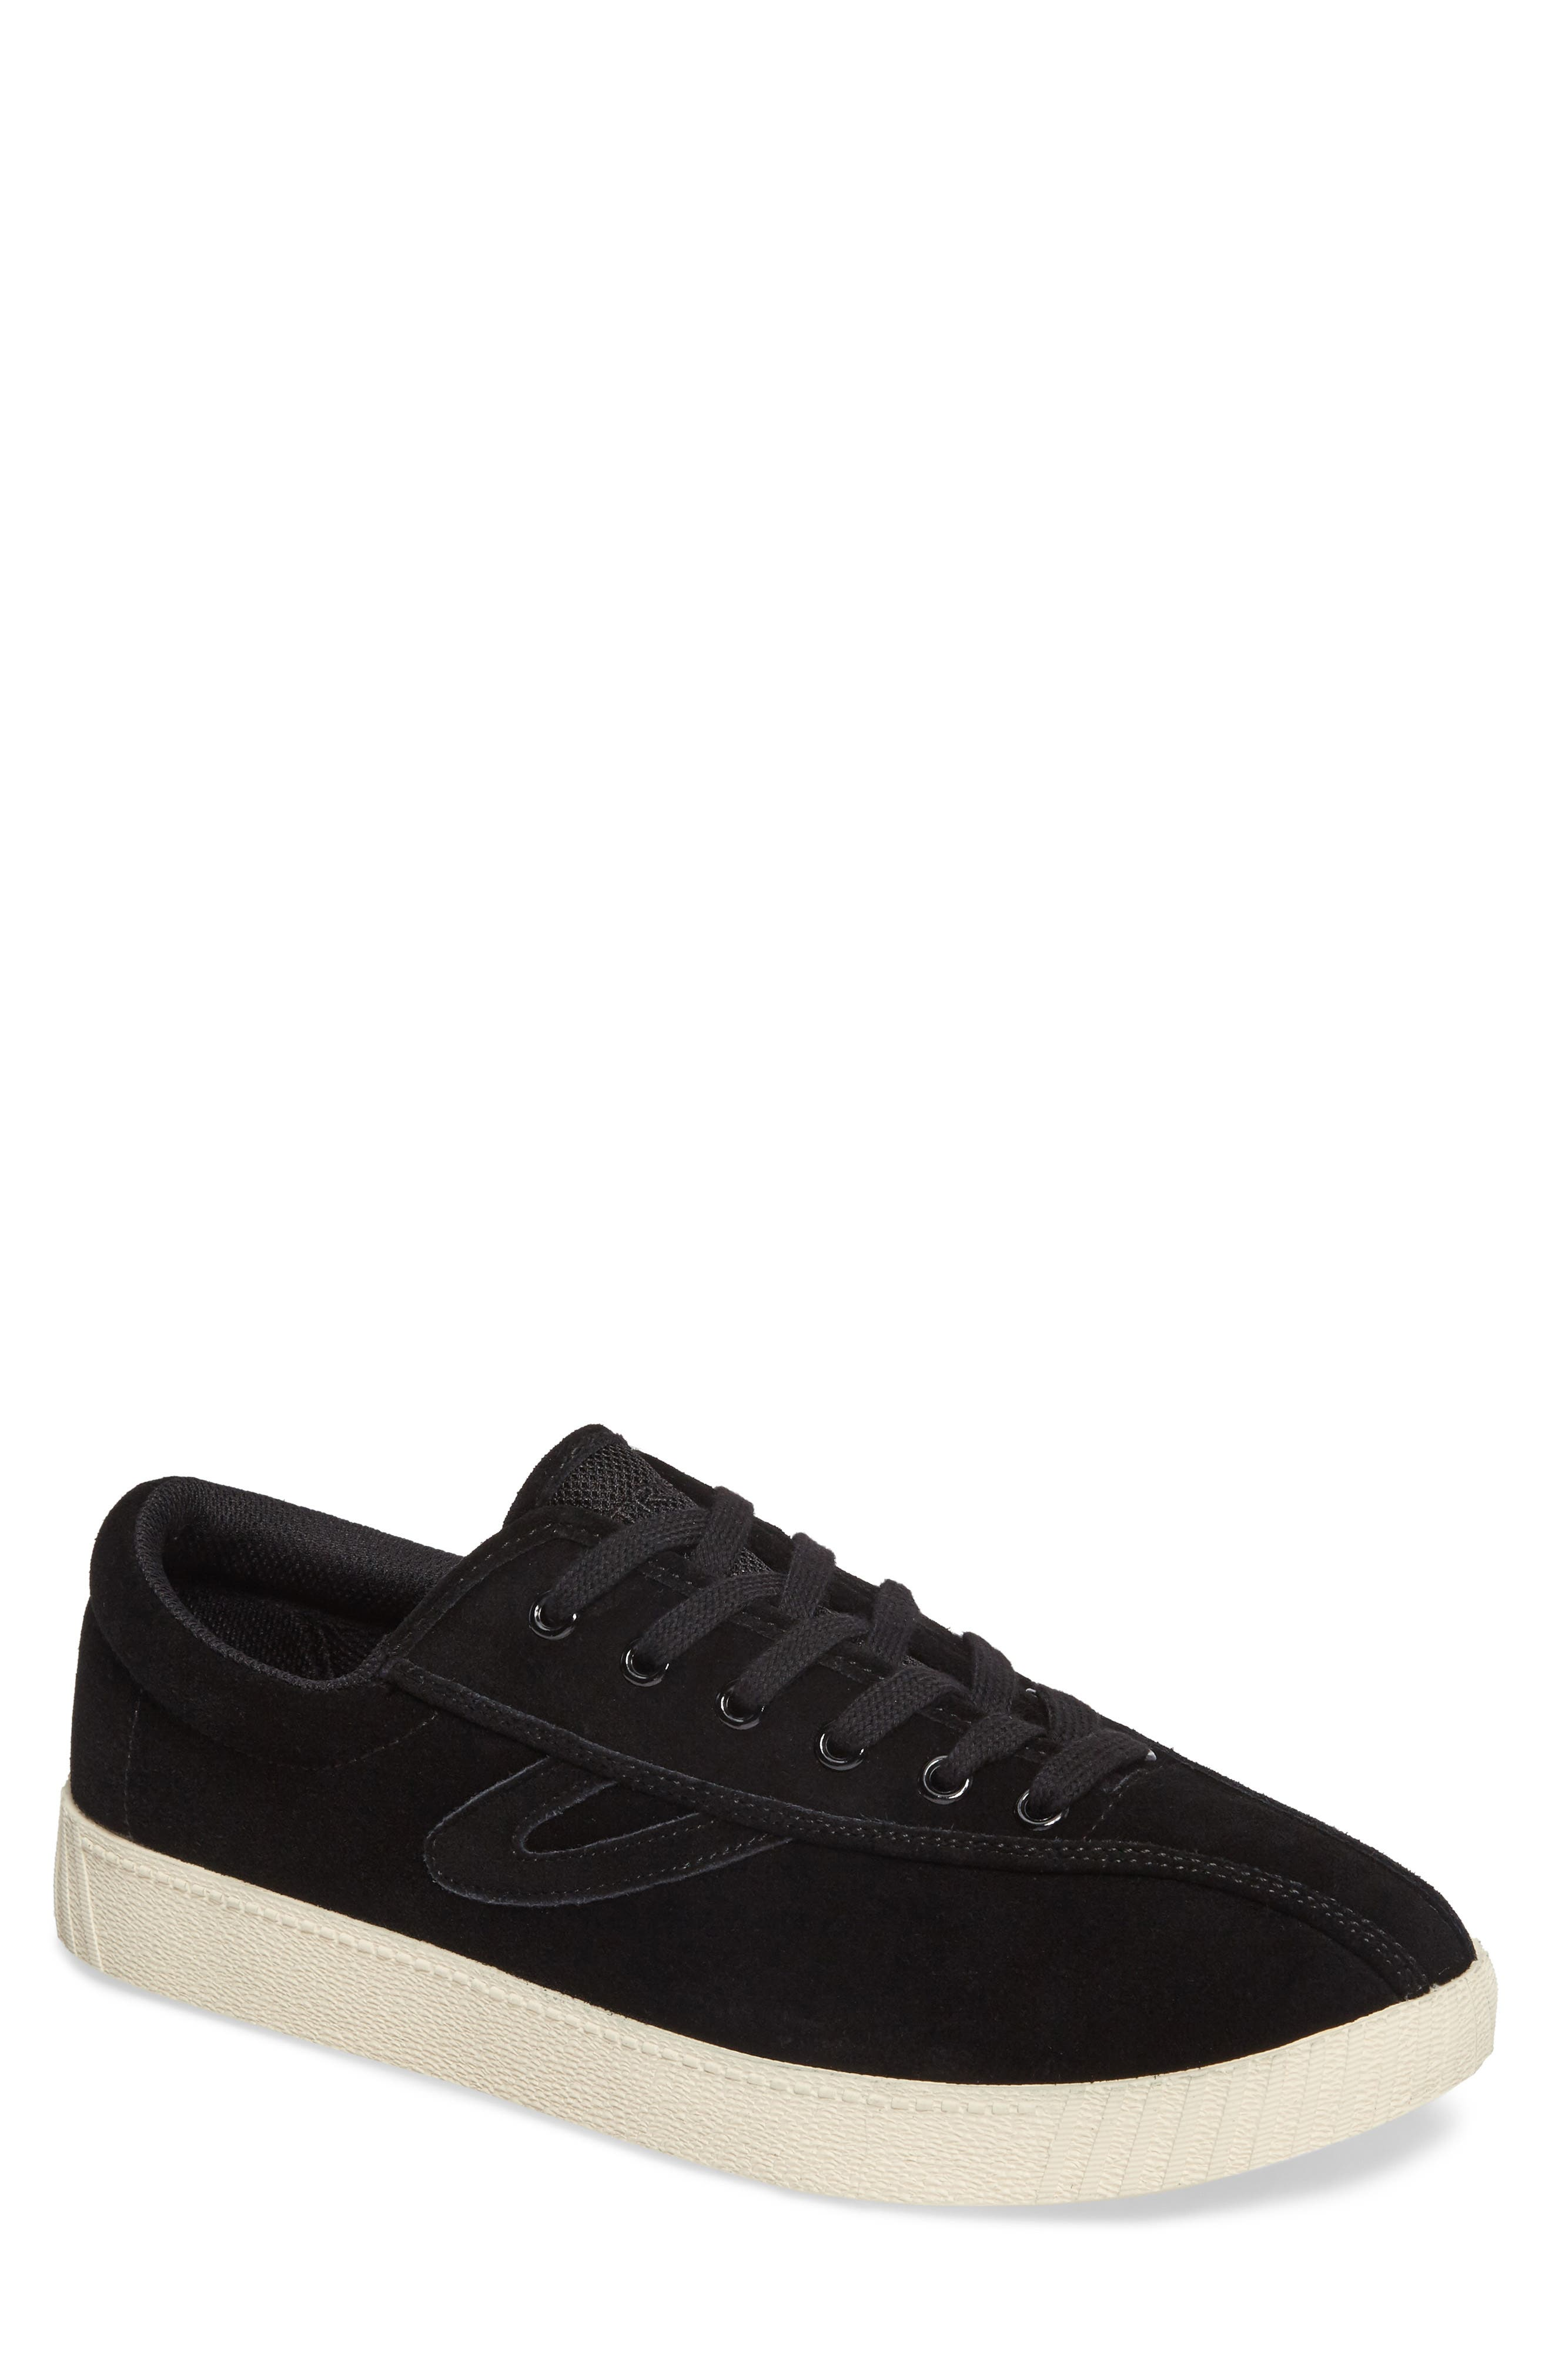 Nylite 16 Sneaker,                             Main thumbnail 1, color,                             BLACK/ BLACK SUEDE